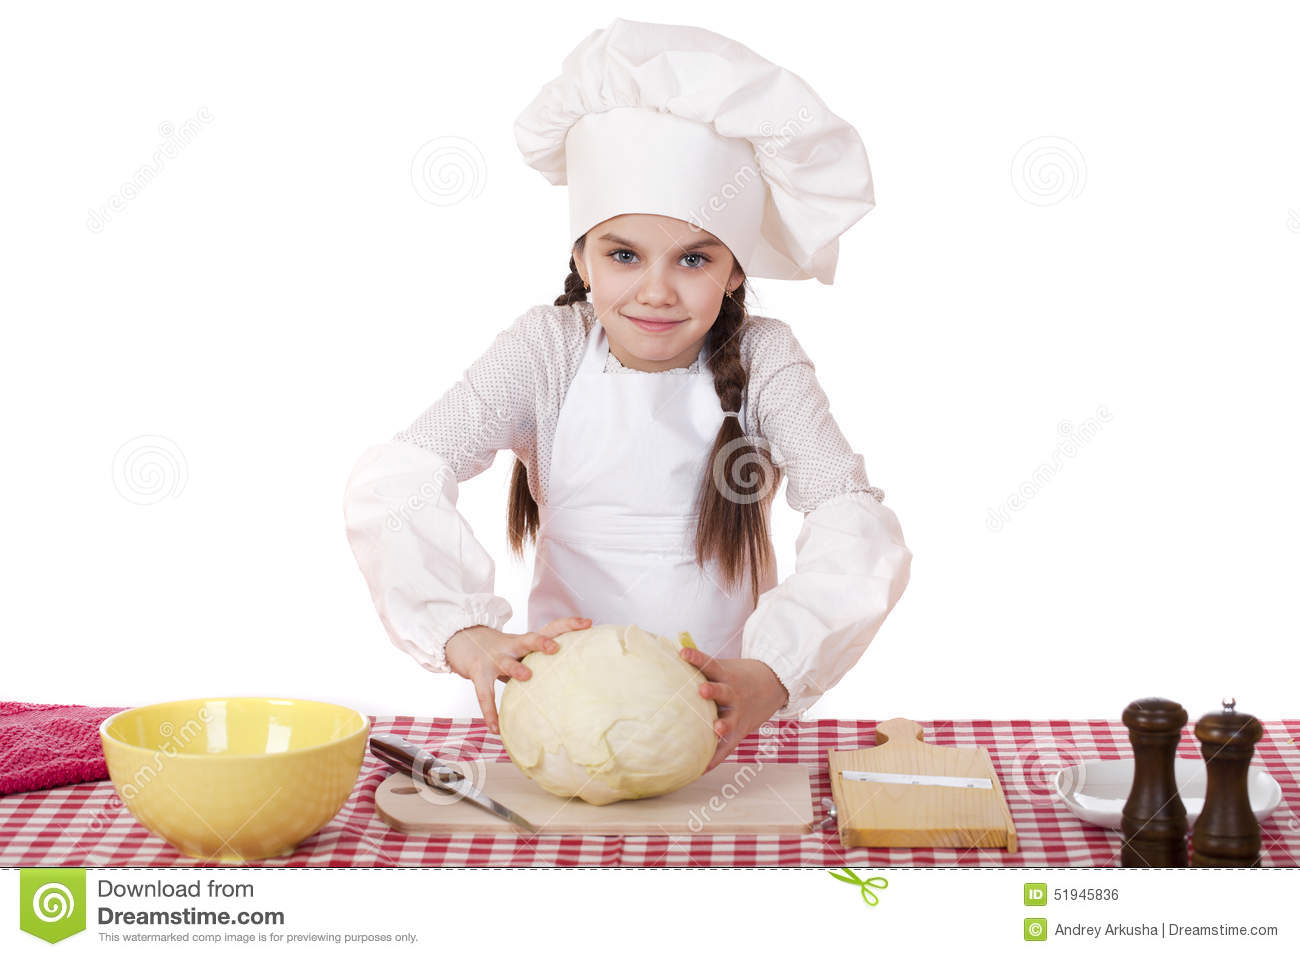 White apron and hat - Portrait Of A Little Girl In A White Apron And Chefs Hat Shred C